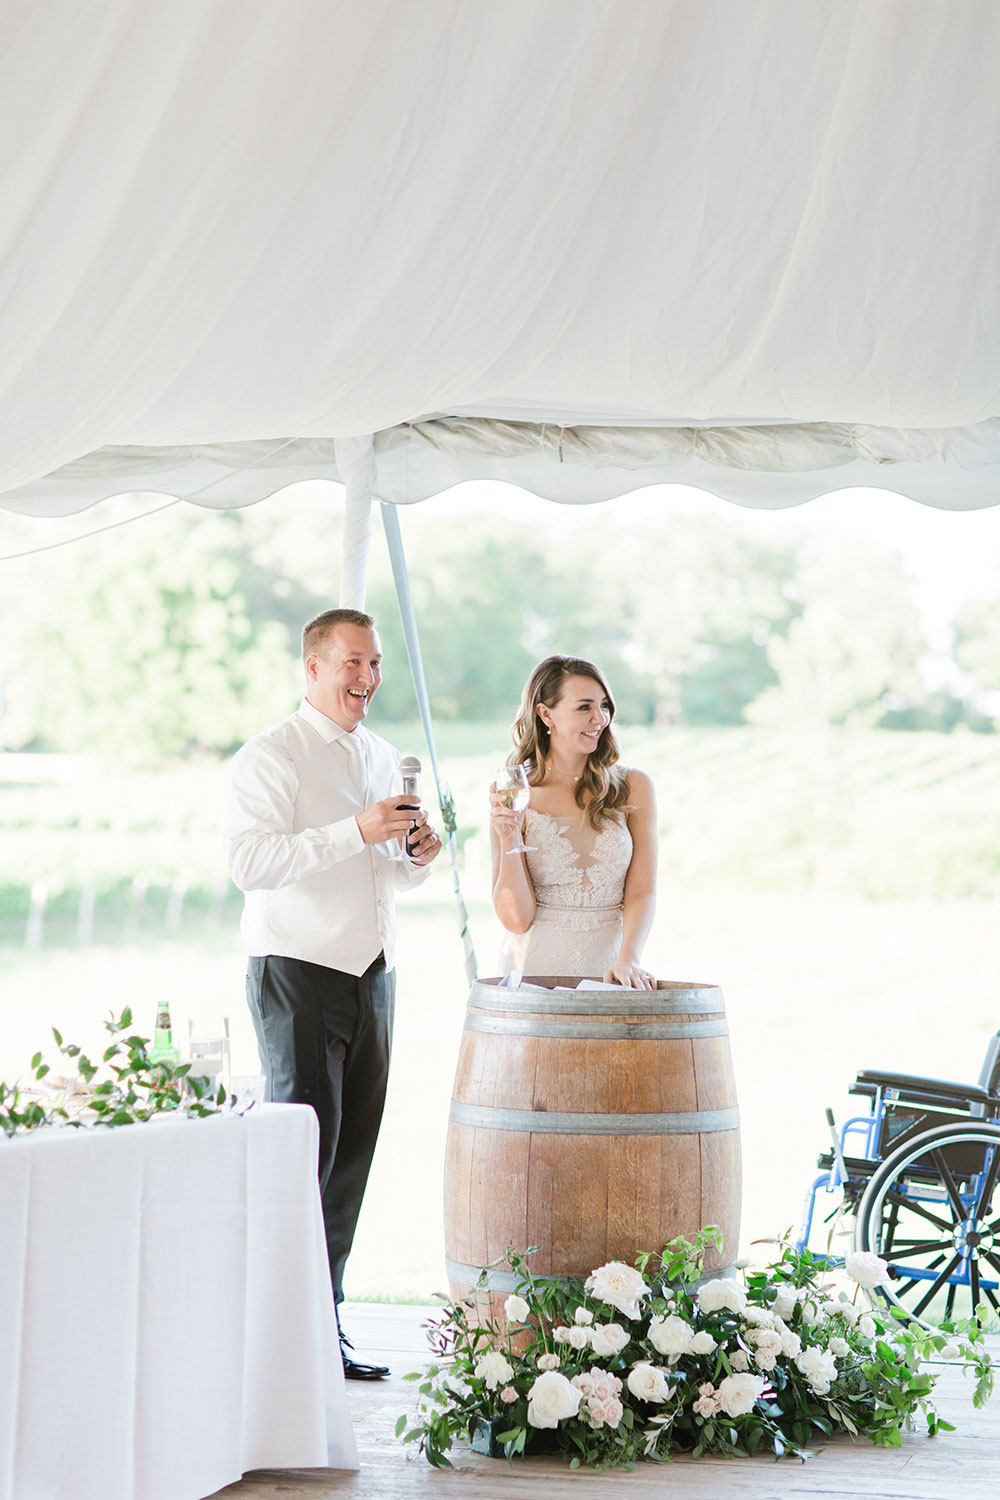 kurtz-orchards-wedding-gracewood-estate-niagara-on-the-lake-photo-by-katie-nicolle-photography-0091.JPG